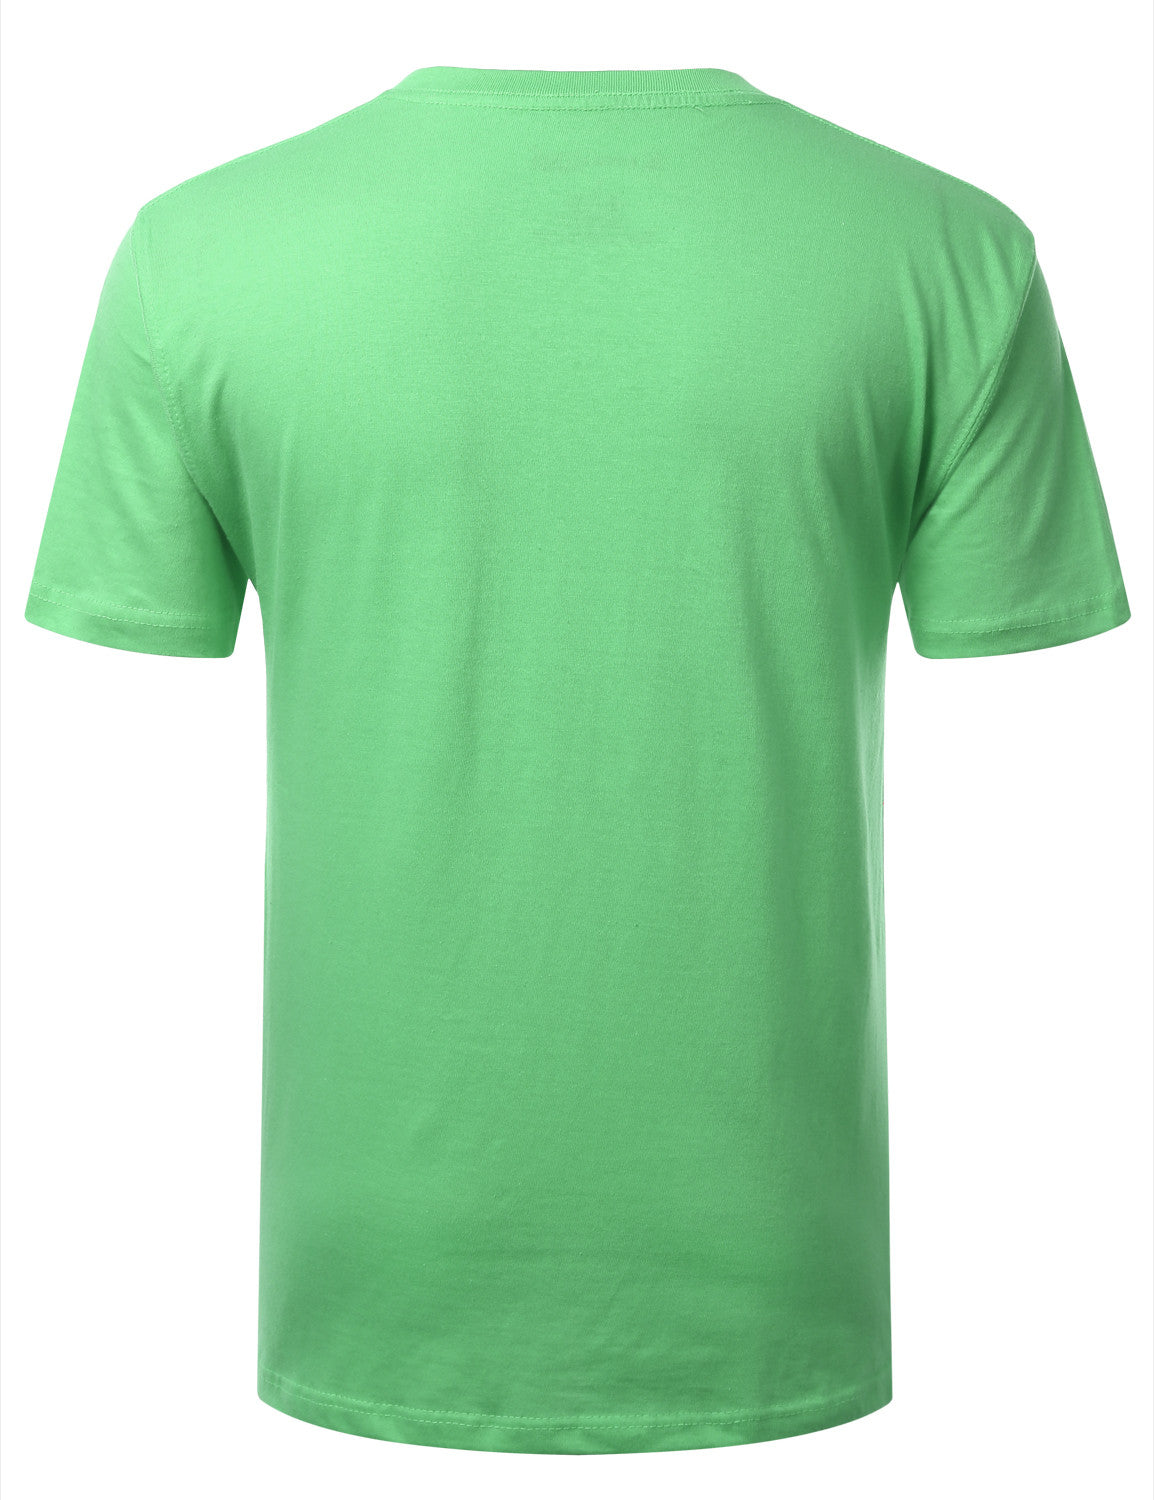 GREENASH Basic V-Neck T-Shirt - URBANCREWS